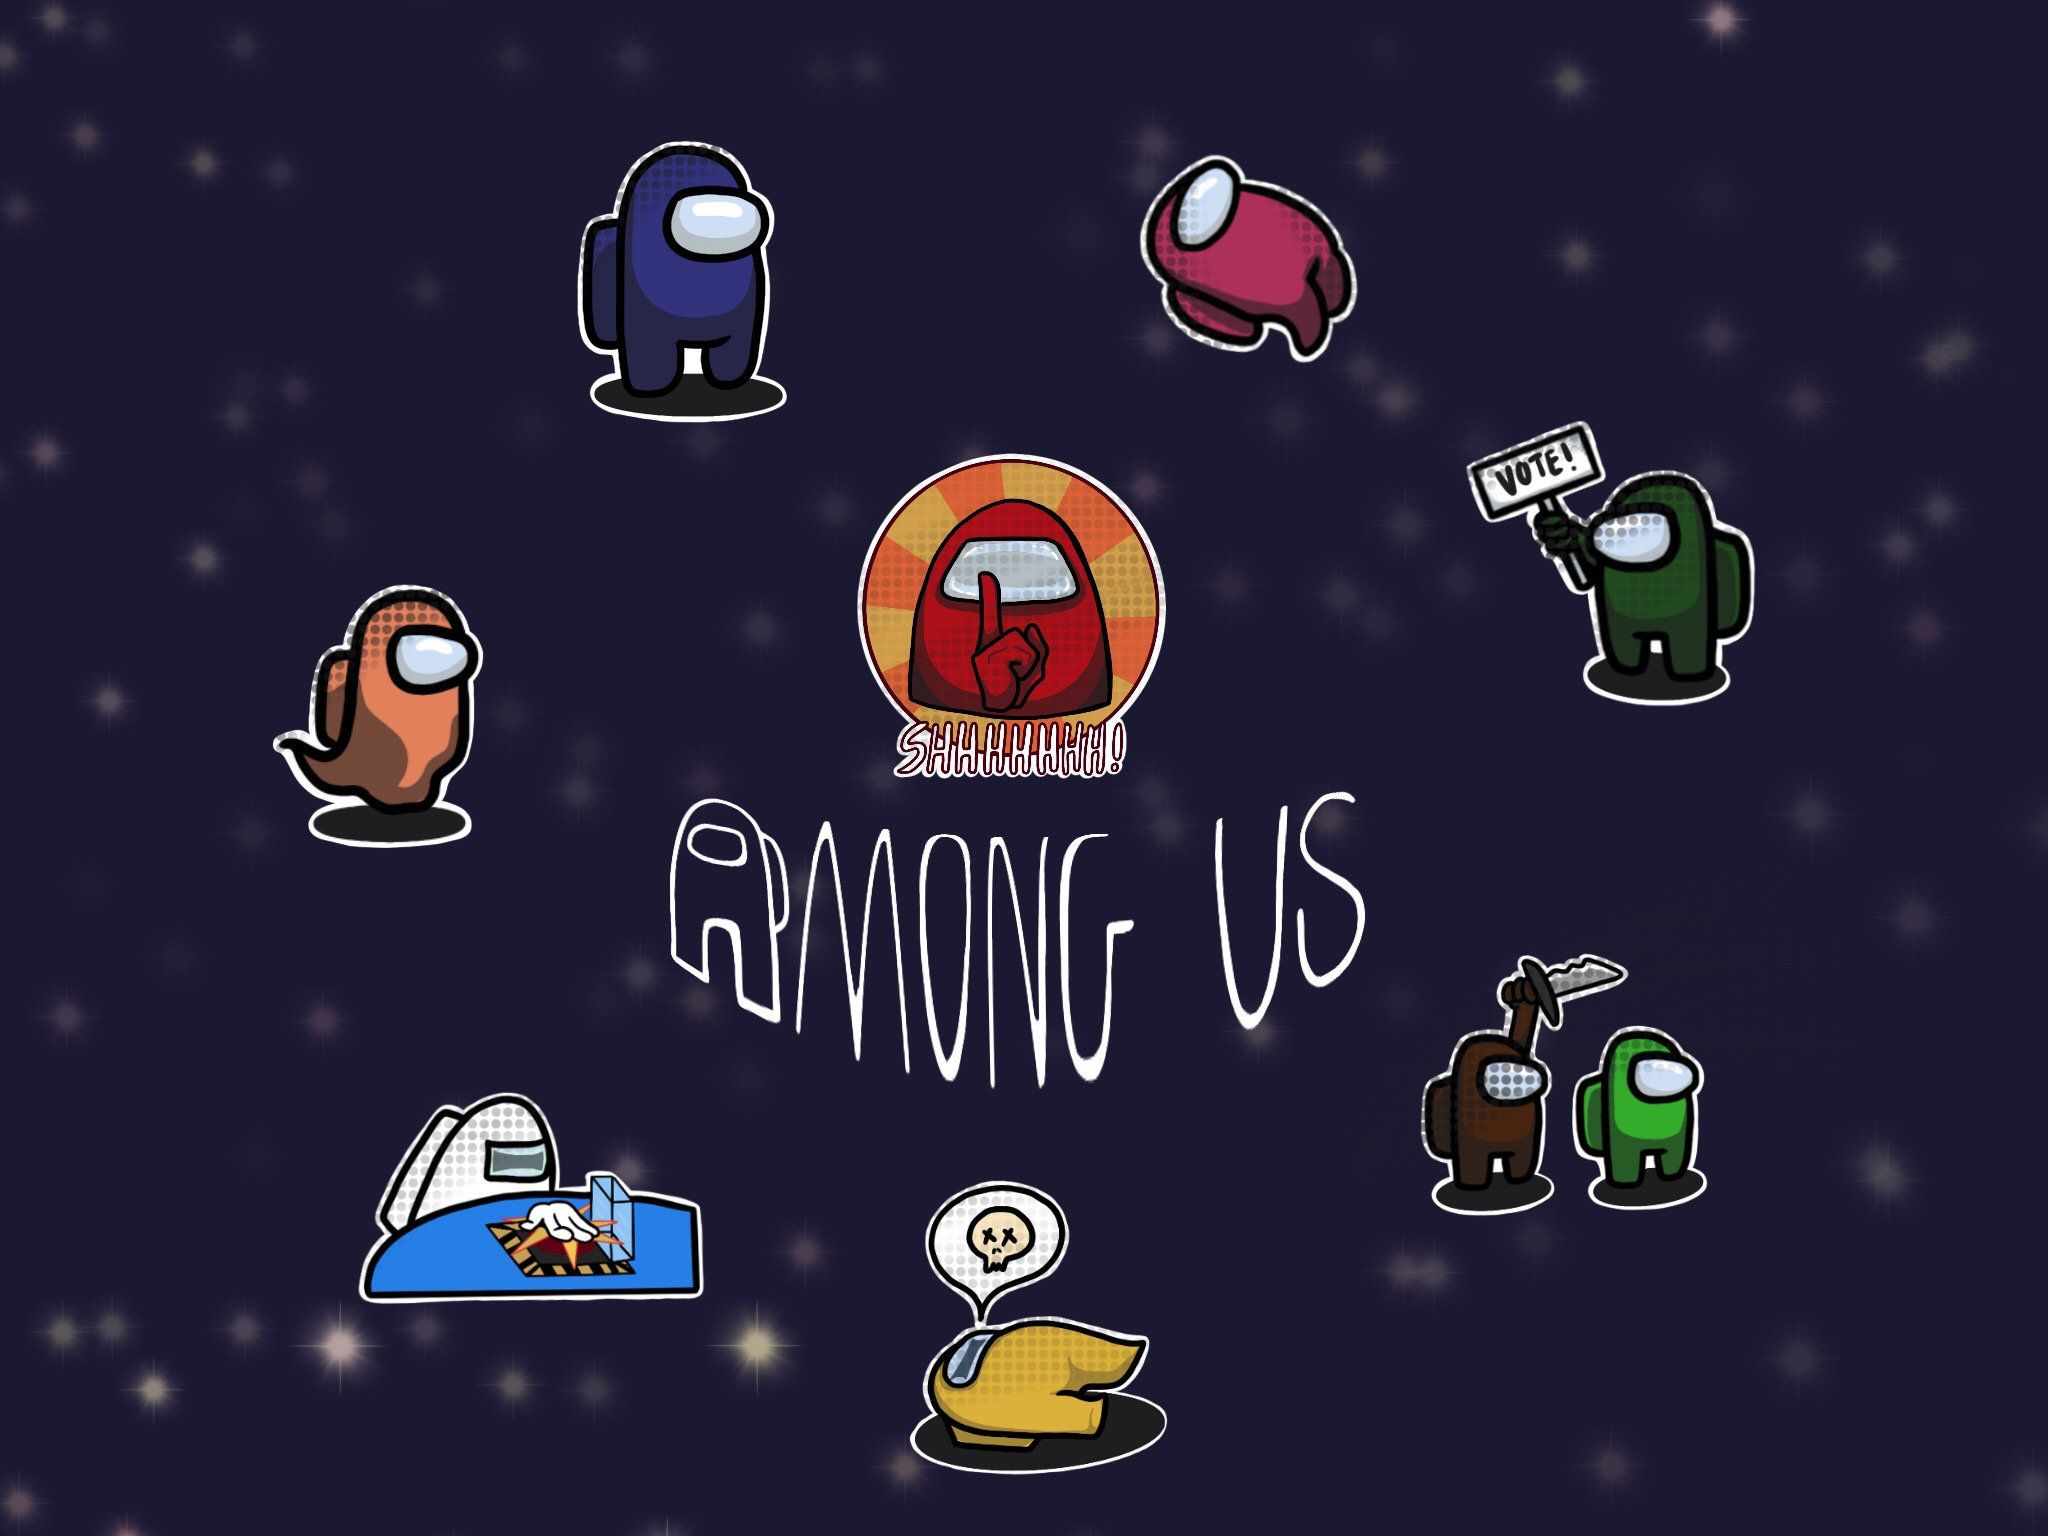 Among Us Stickers Self Customizable Cartoon Goodnotes Stickers By Huawenploy99 On Etsy Apple Wallpaper Iphone Apple Wallpaper Girls Cartoon Art